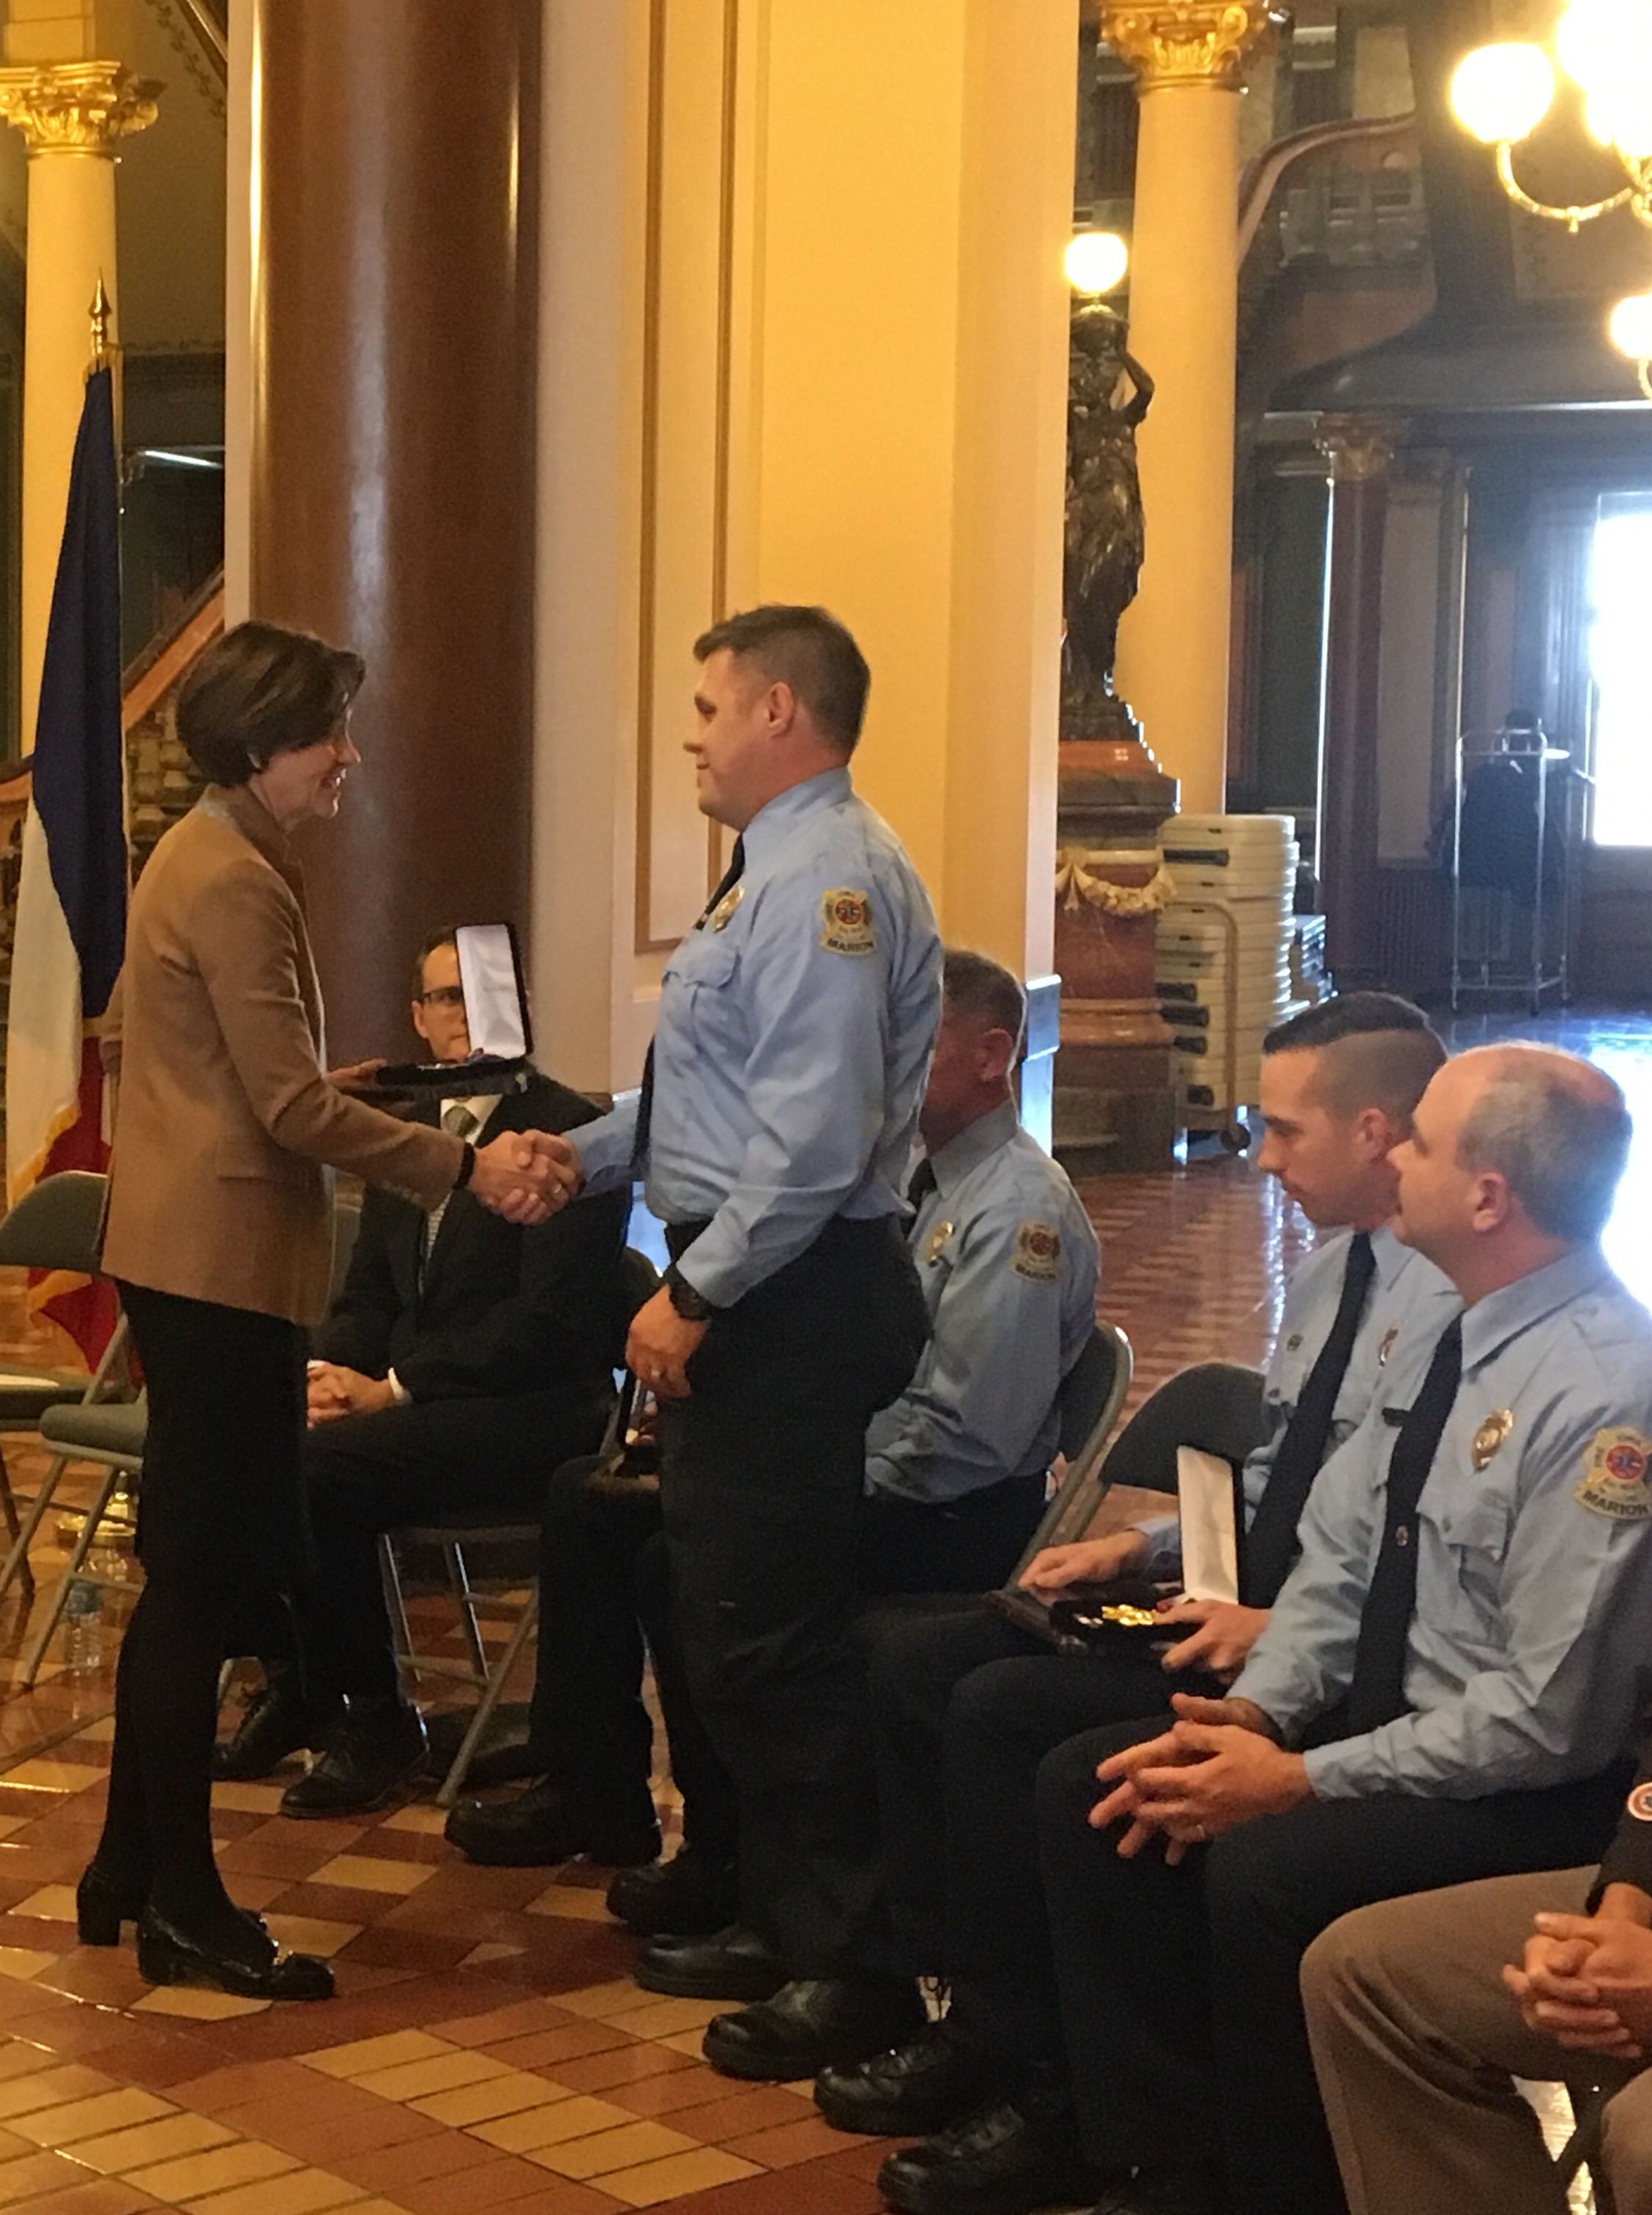 marion firefighters receiving award from governor reynolds